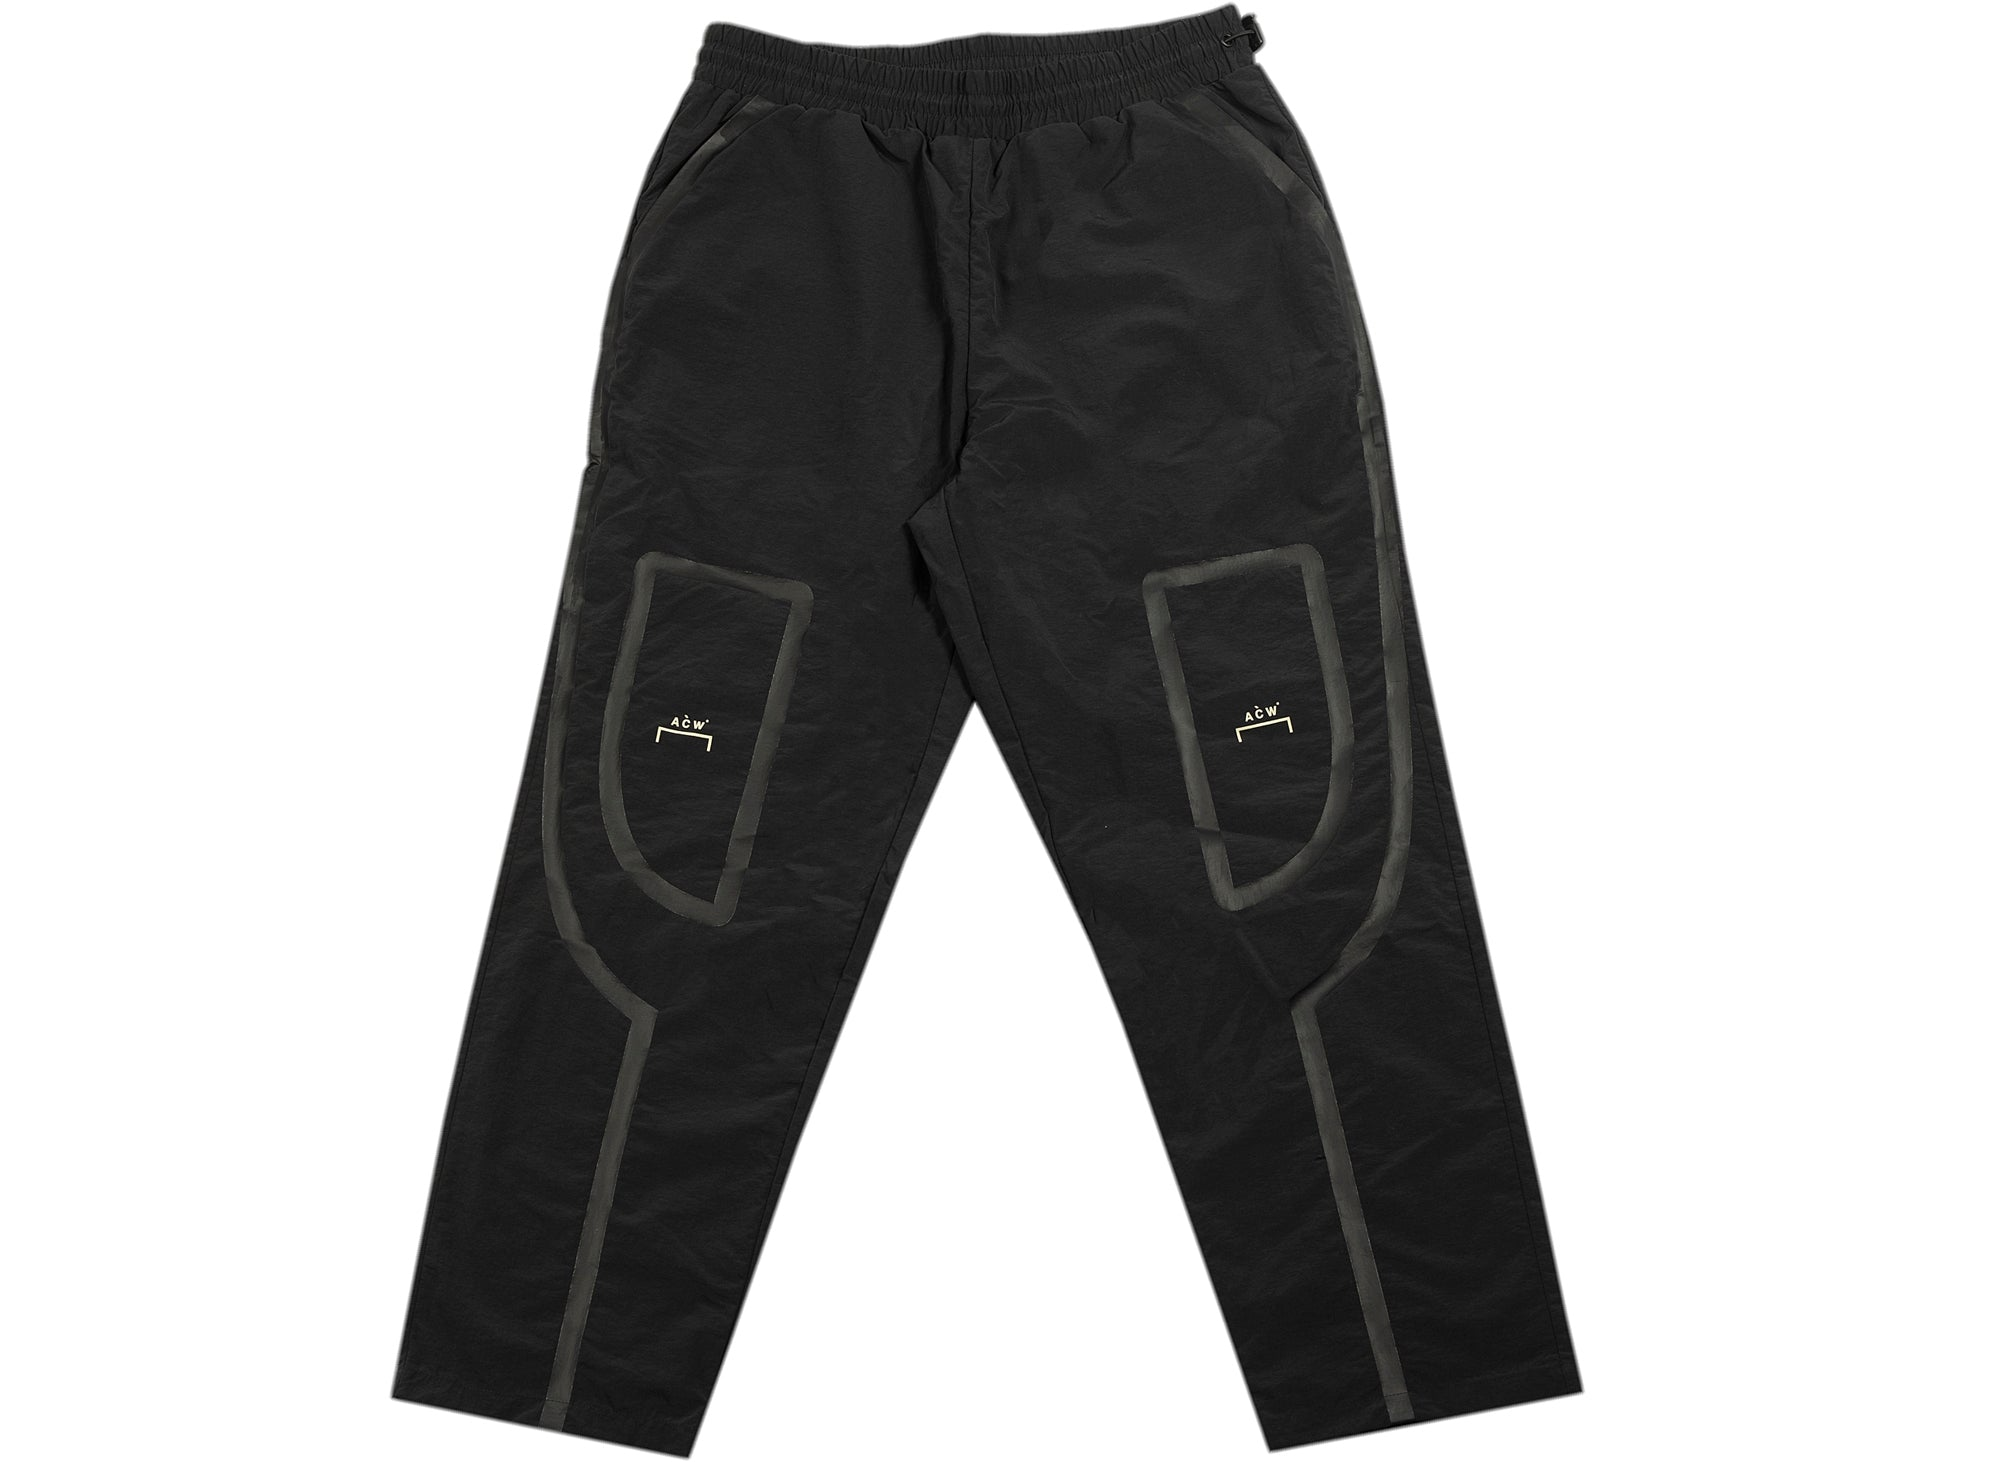 A-COLD-WALL* Woven Taped Track Pants in Black